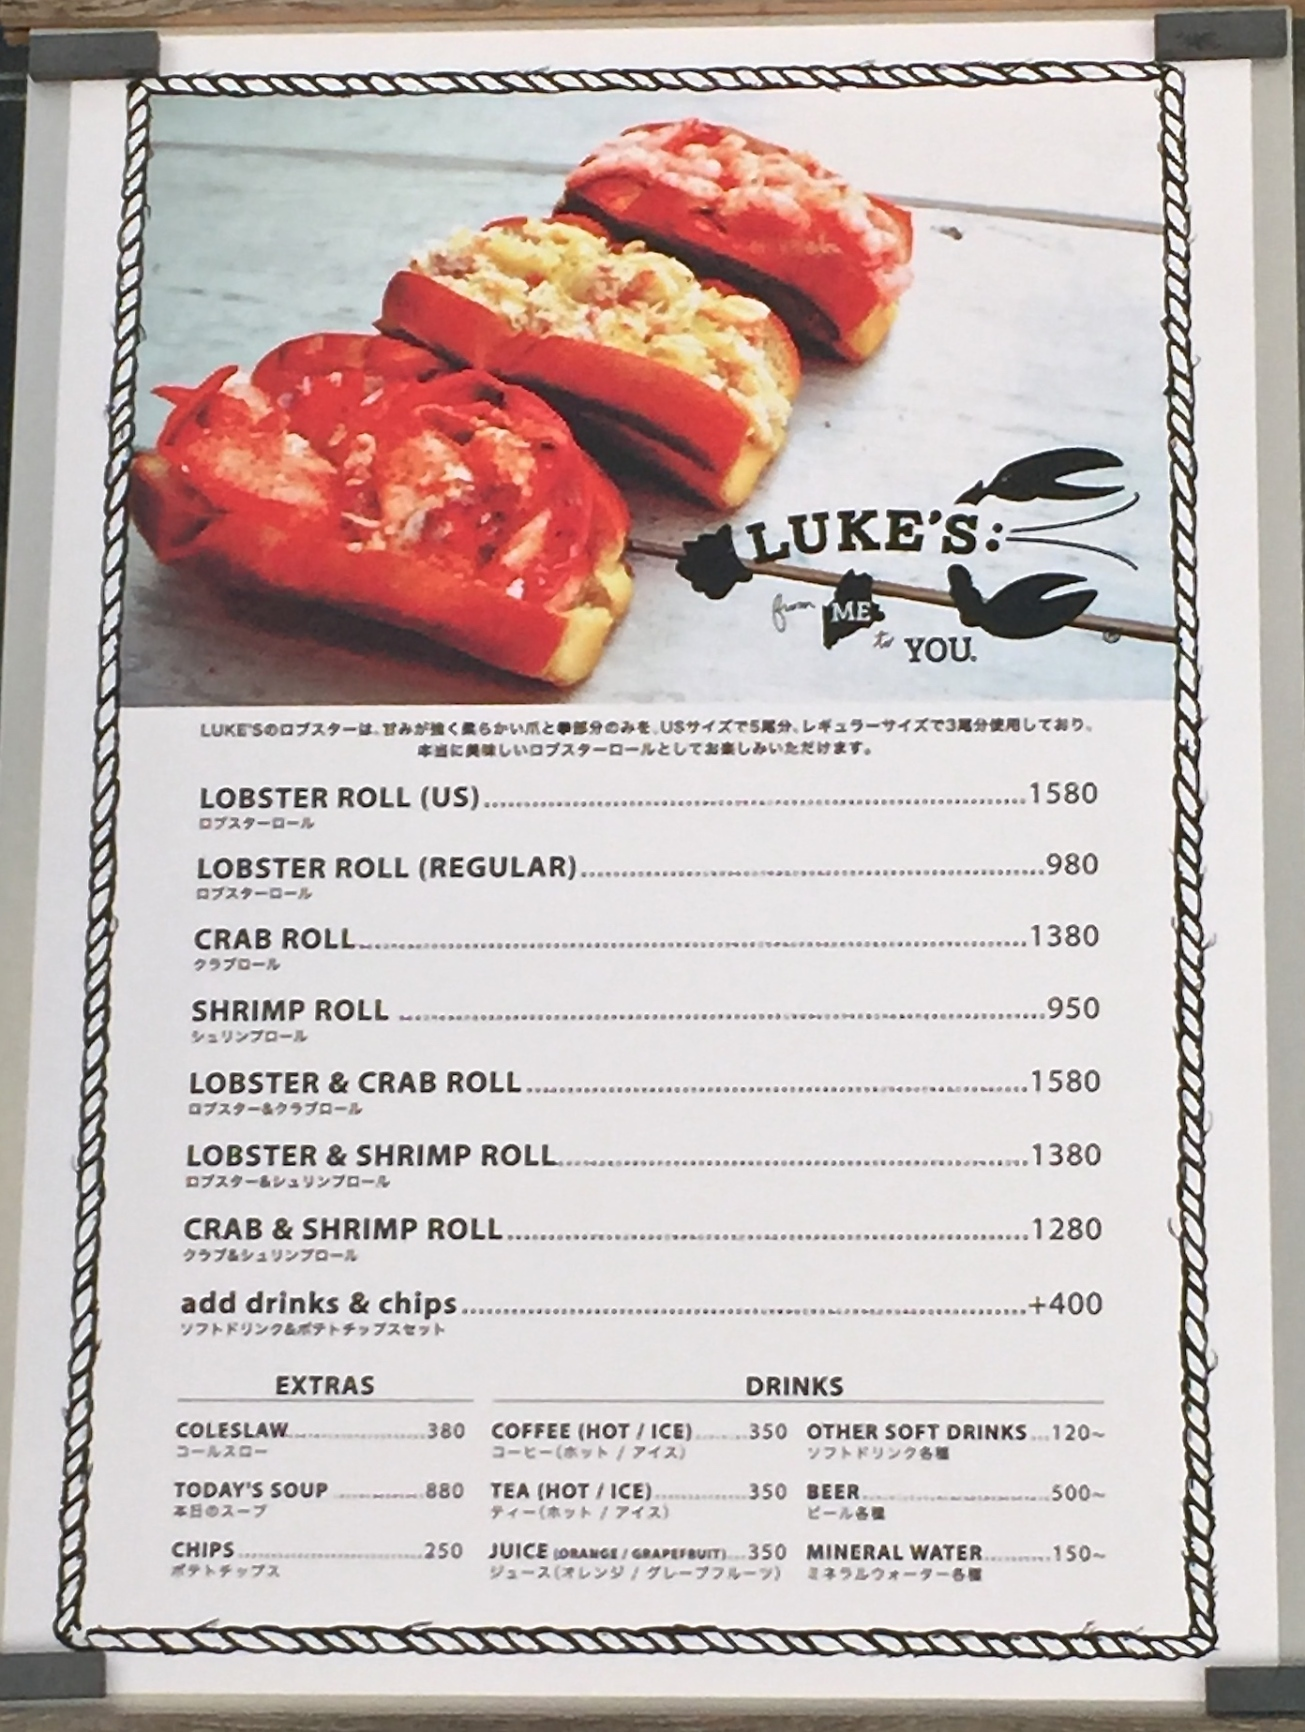 Luke's Lobster Menu